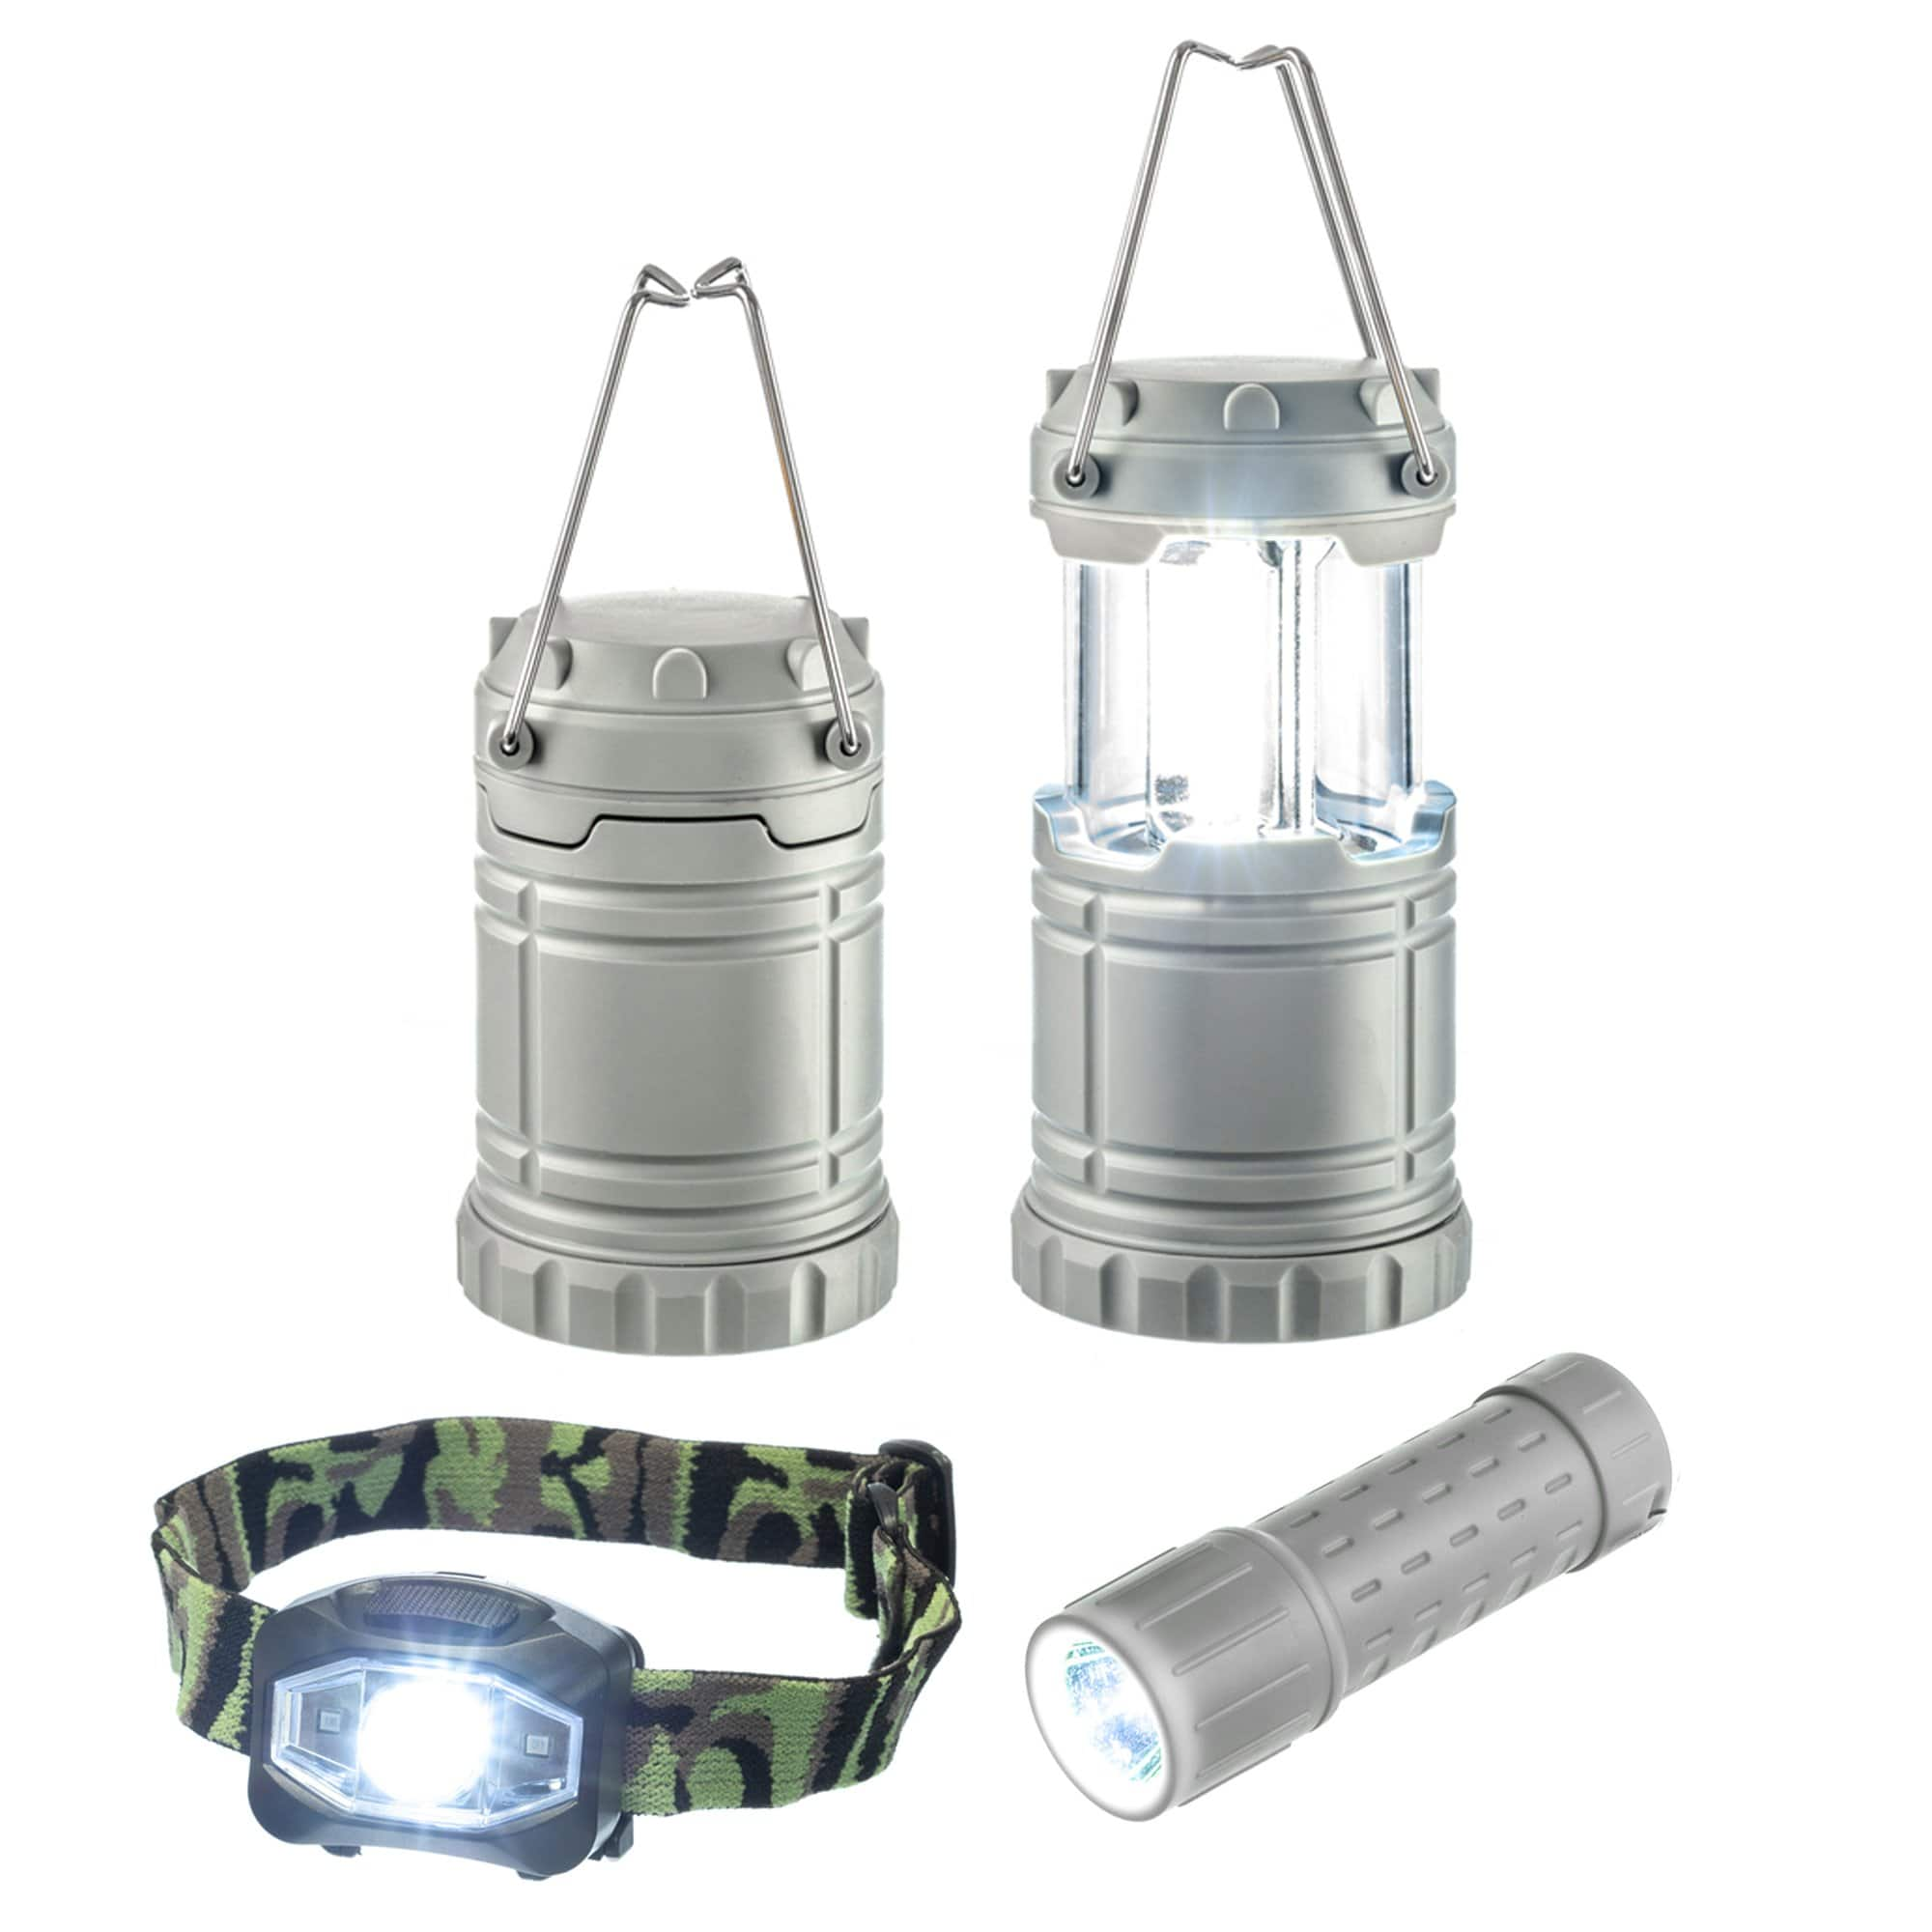 """3Pc Camping Light Set (Gray color) - Collapsible Lantern, Head Lamp  & Flashlight"""